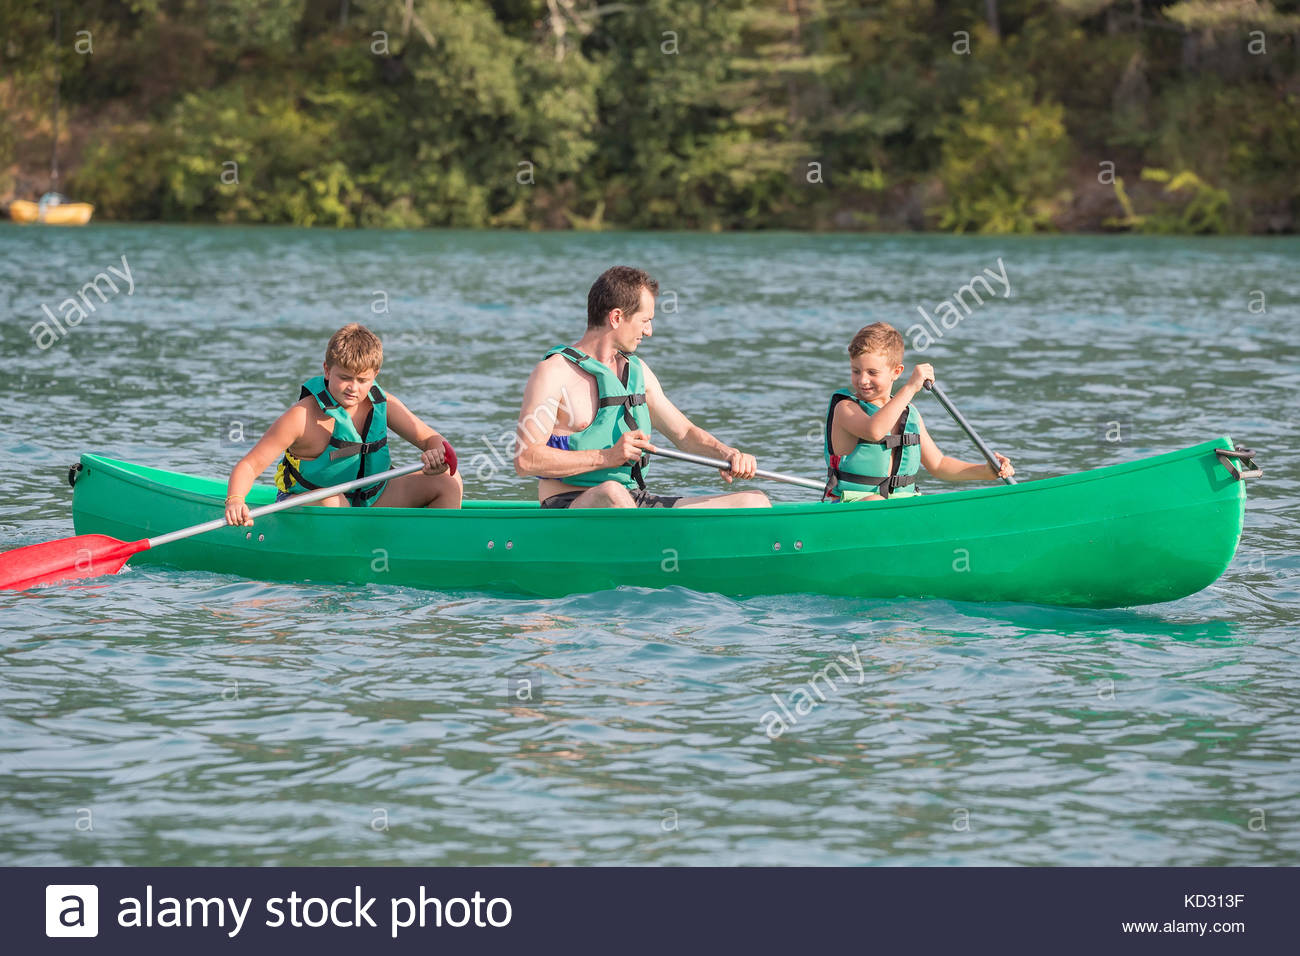 Father and sons in canoe, Esparron-de-Verdon, Provence Alpes Cote d'Azur, France, Europe - Stock Image